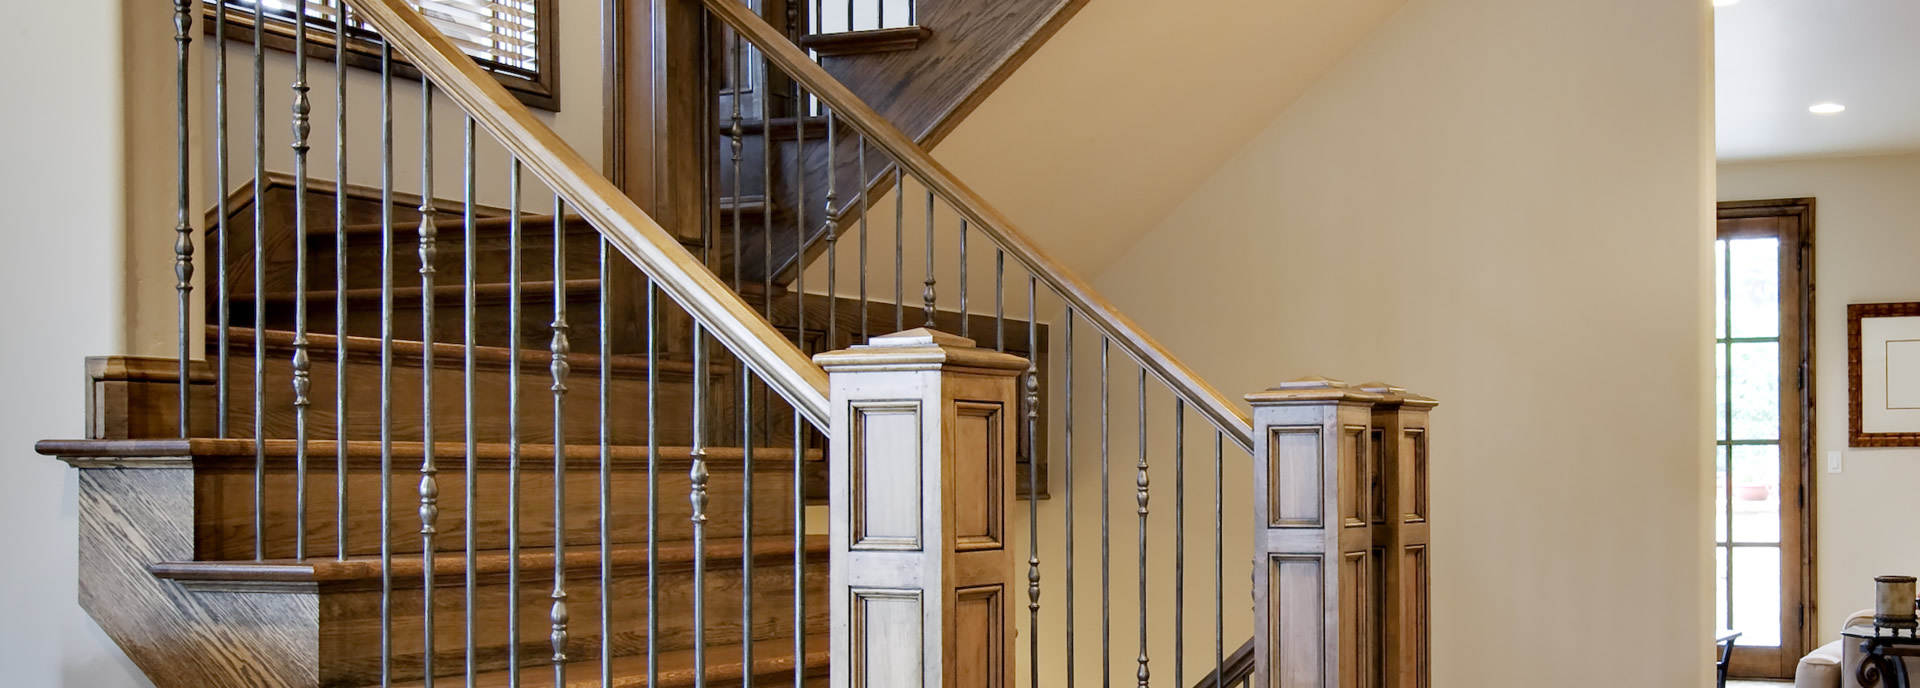 Wrought Iron Stair Railings: Process and Design Alpharetta, GA